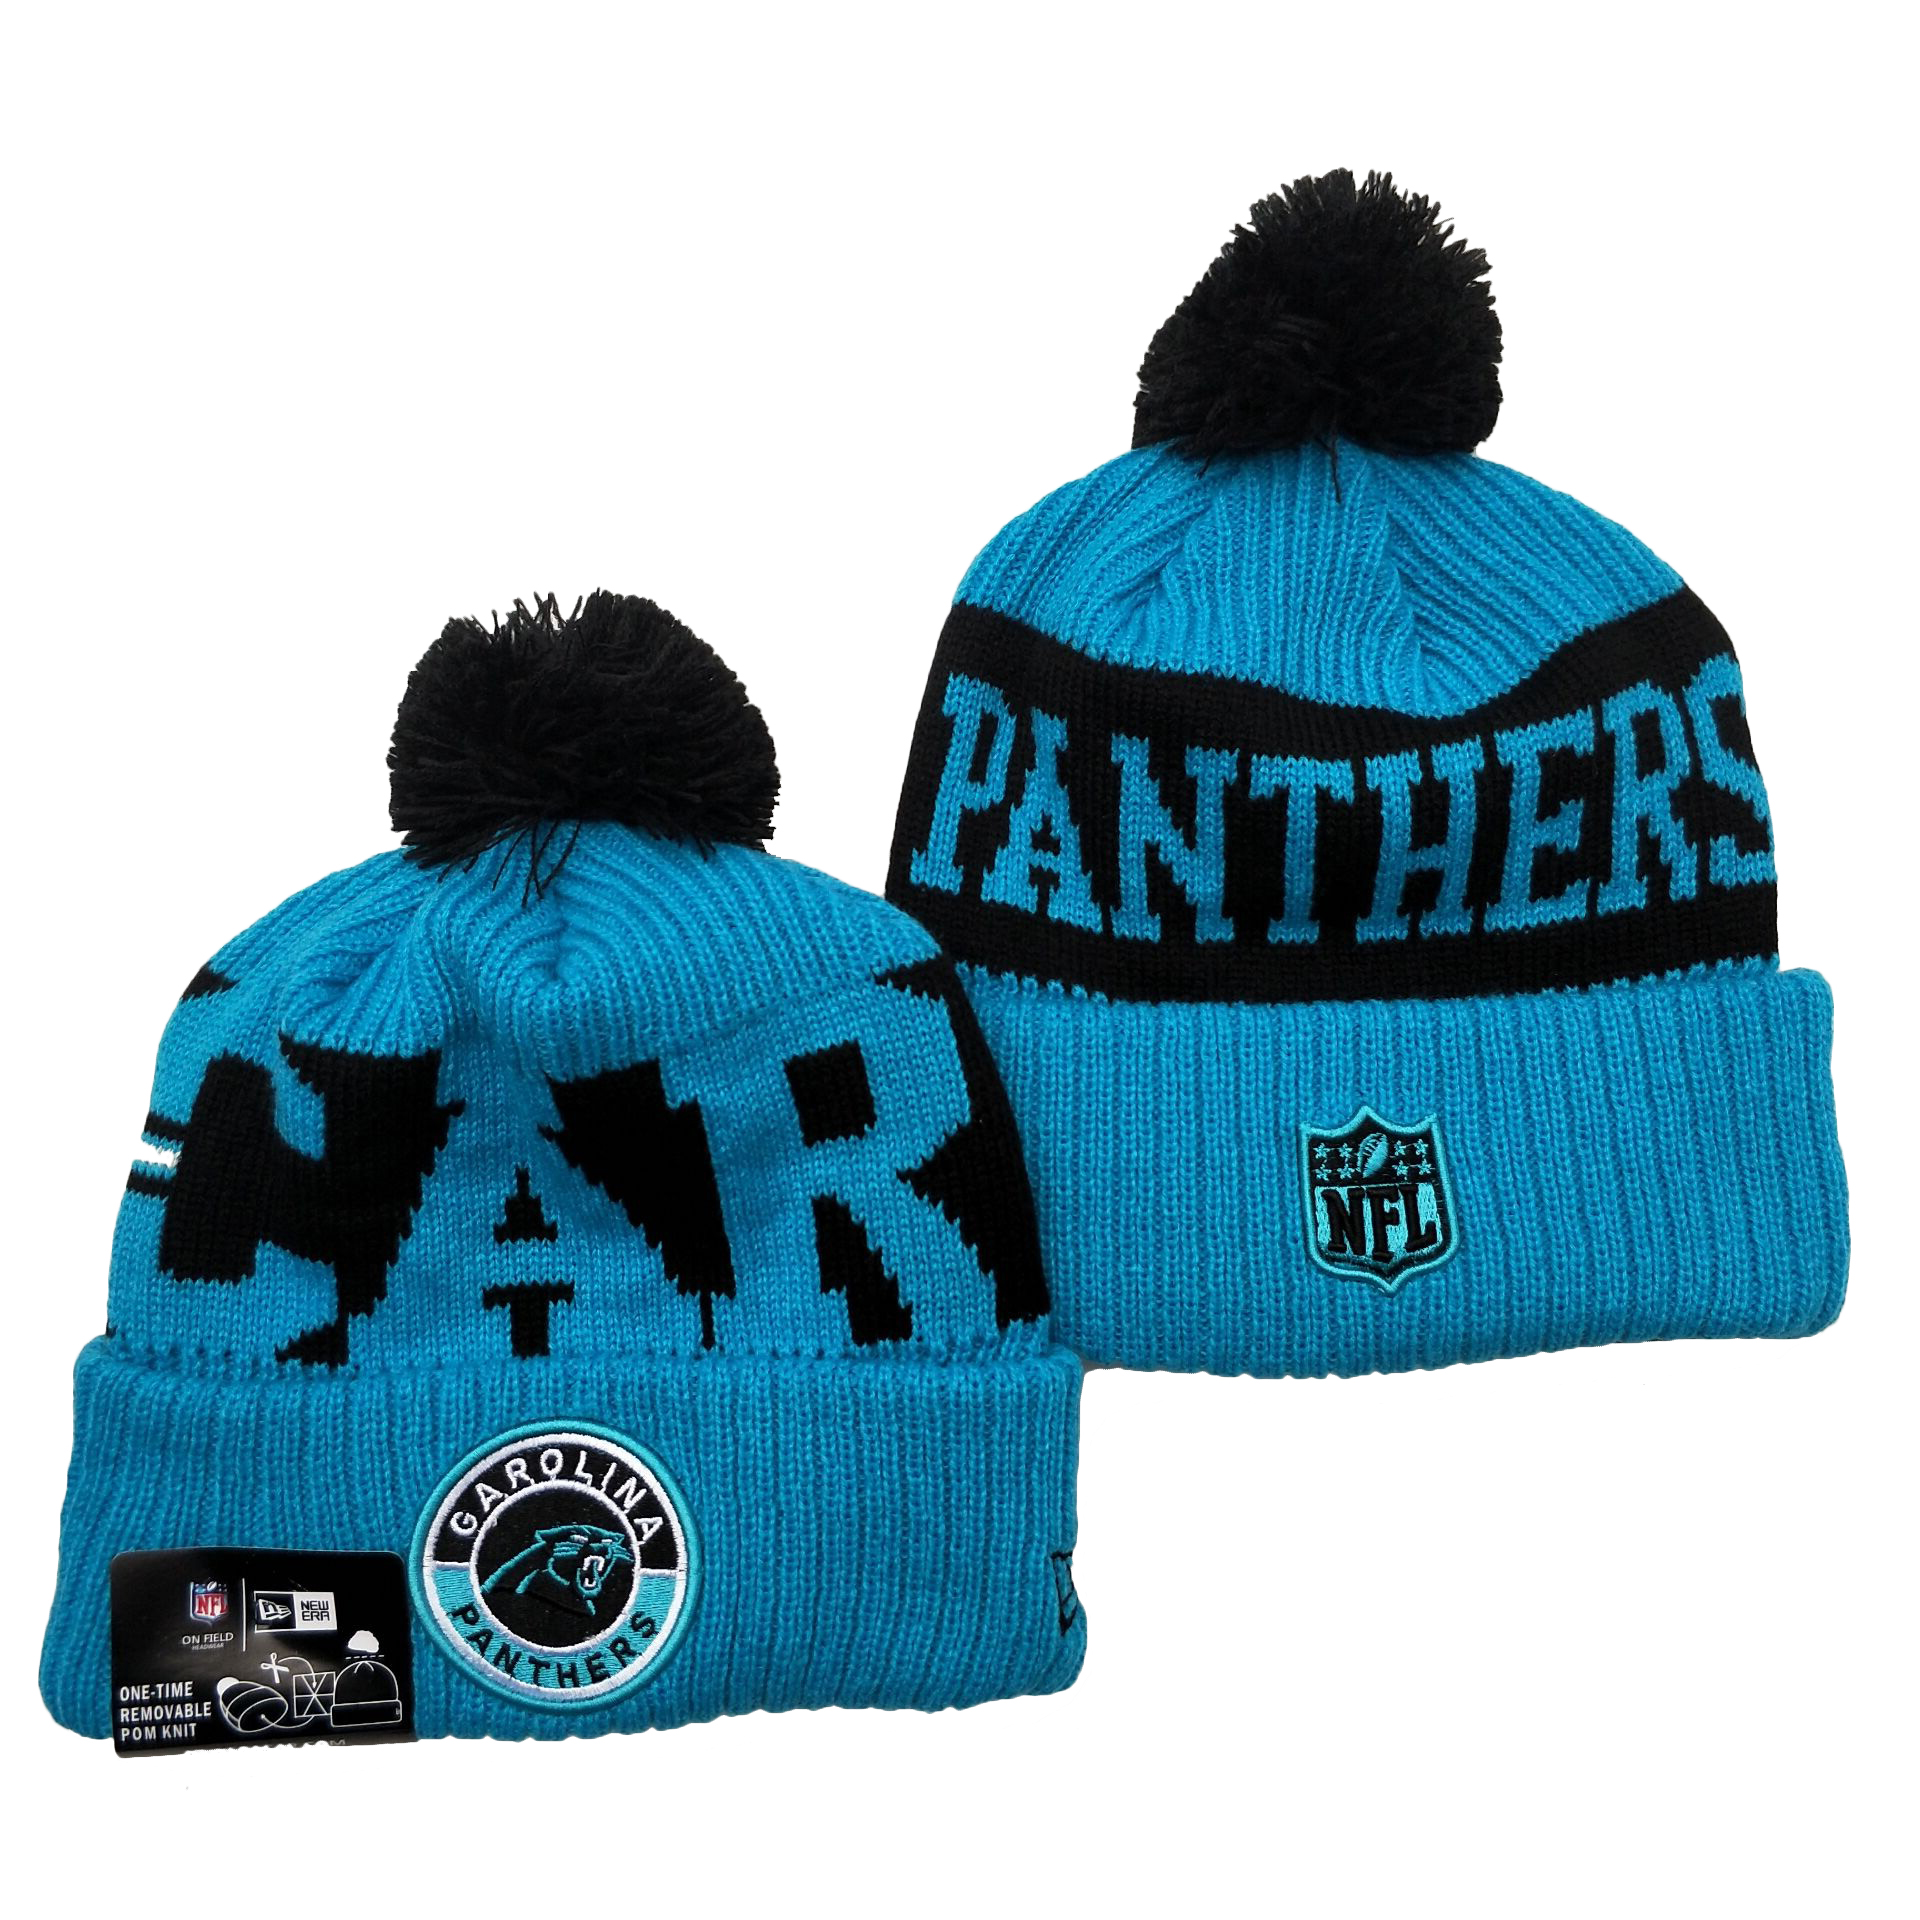 Panthers Team Logo Blue 2020 NFL Sideline Pom Cuffed Knit Hat YD